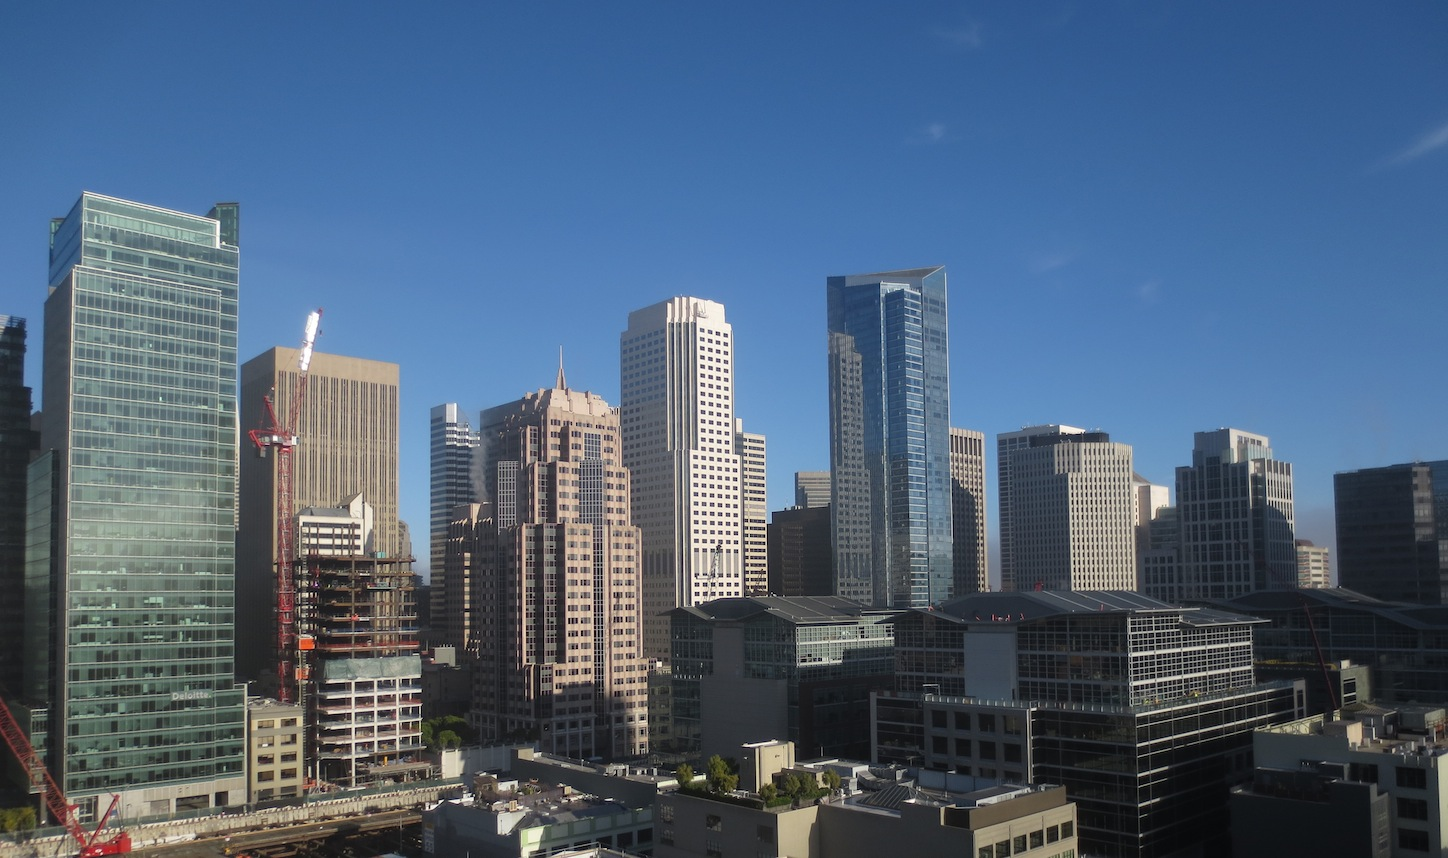 Downtown skyline of San Francisco during the day